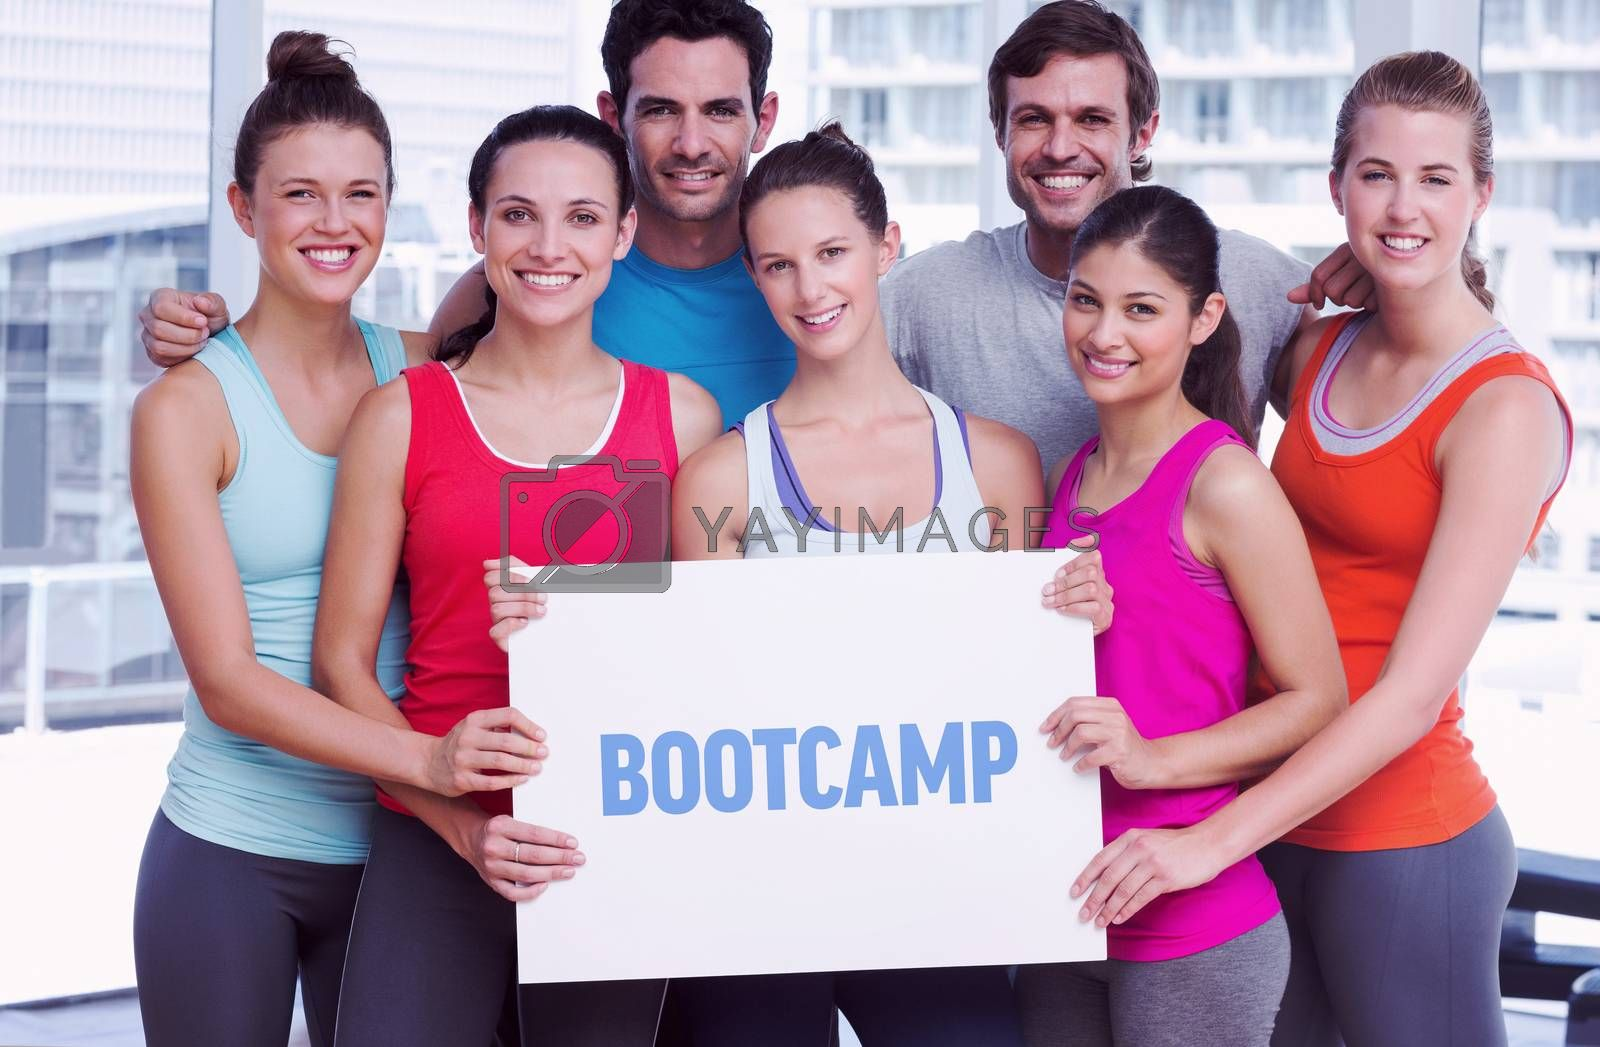 Bootcamp against fit smiling people holding blank board by Wavebreakmedia